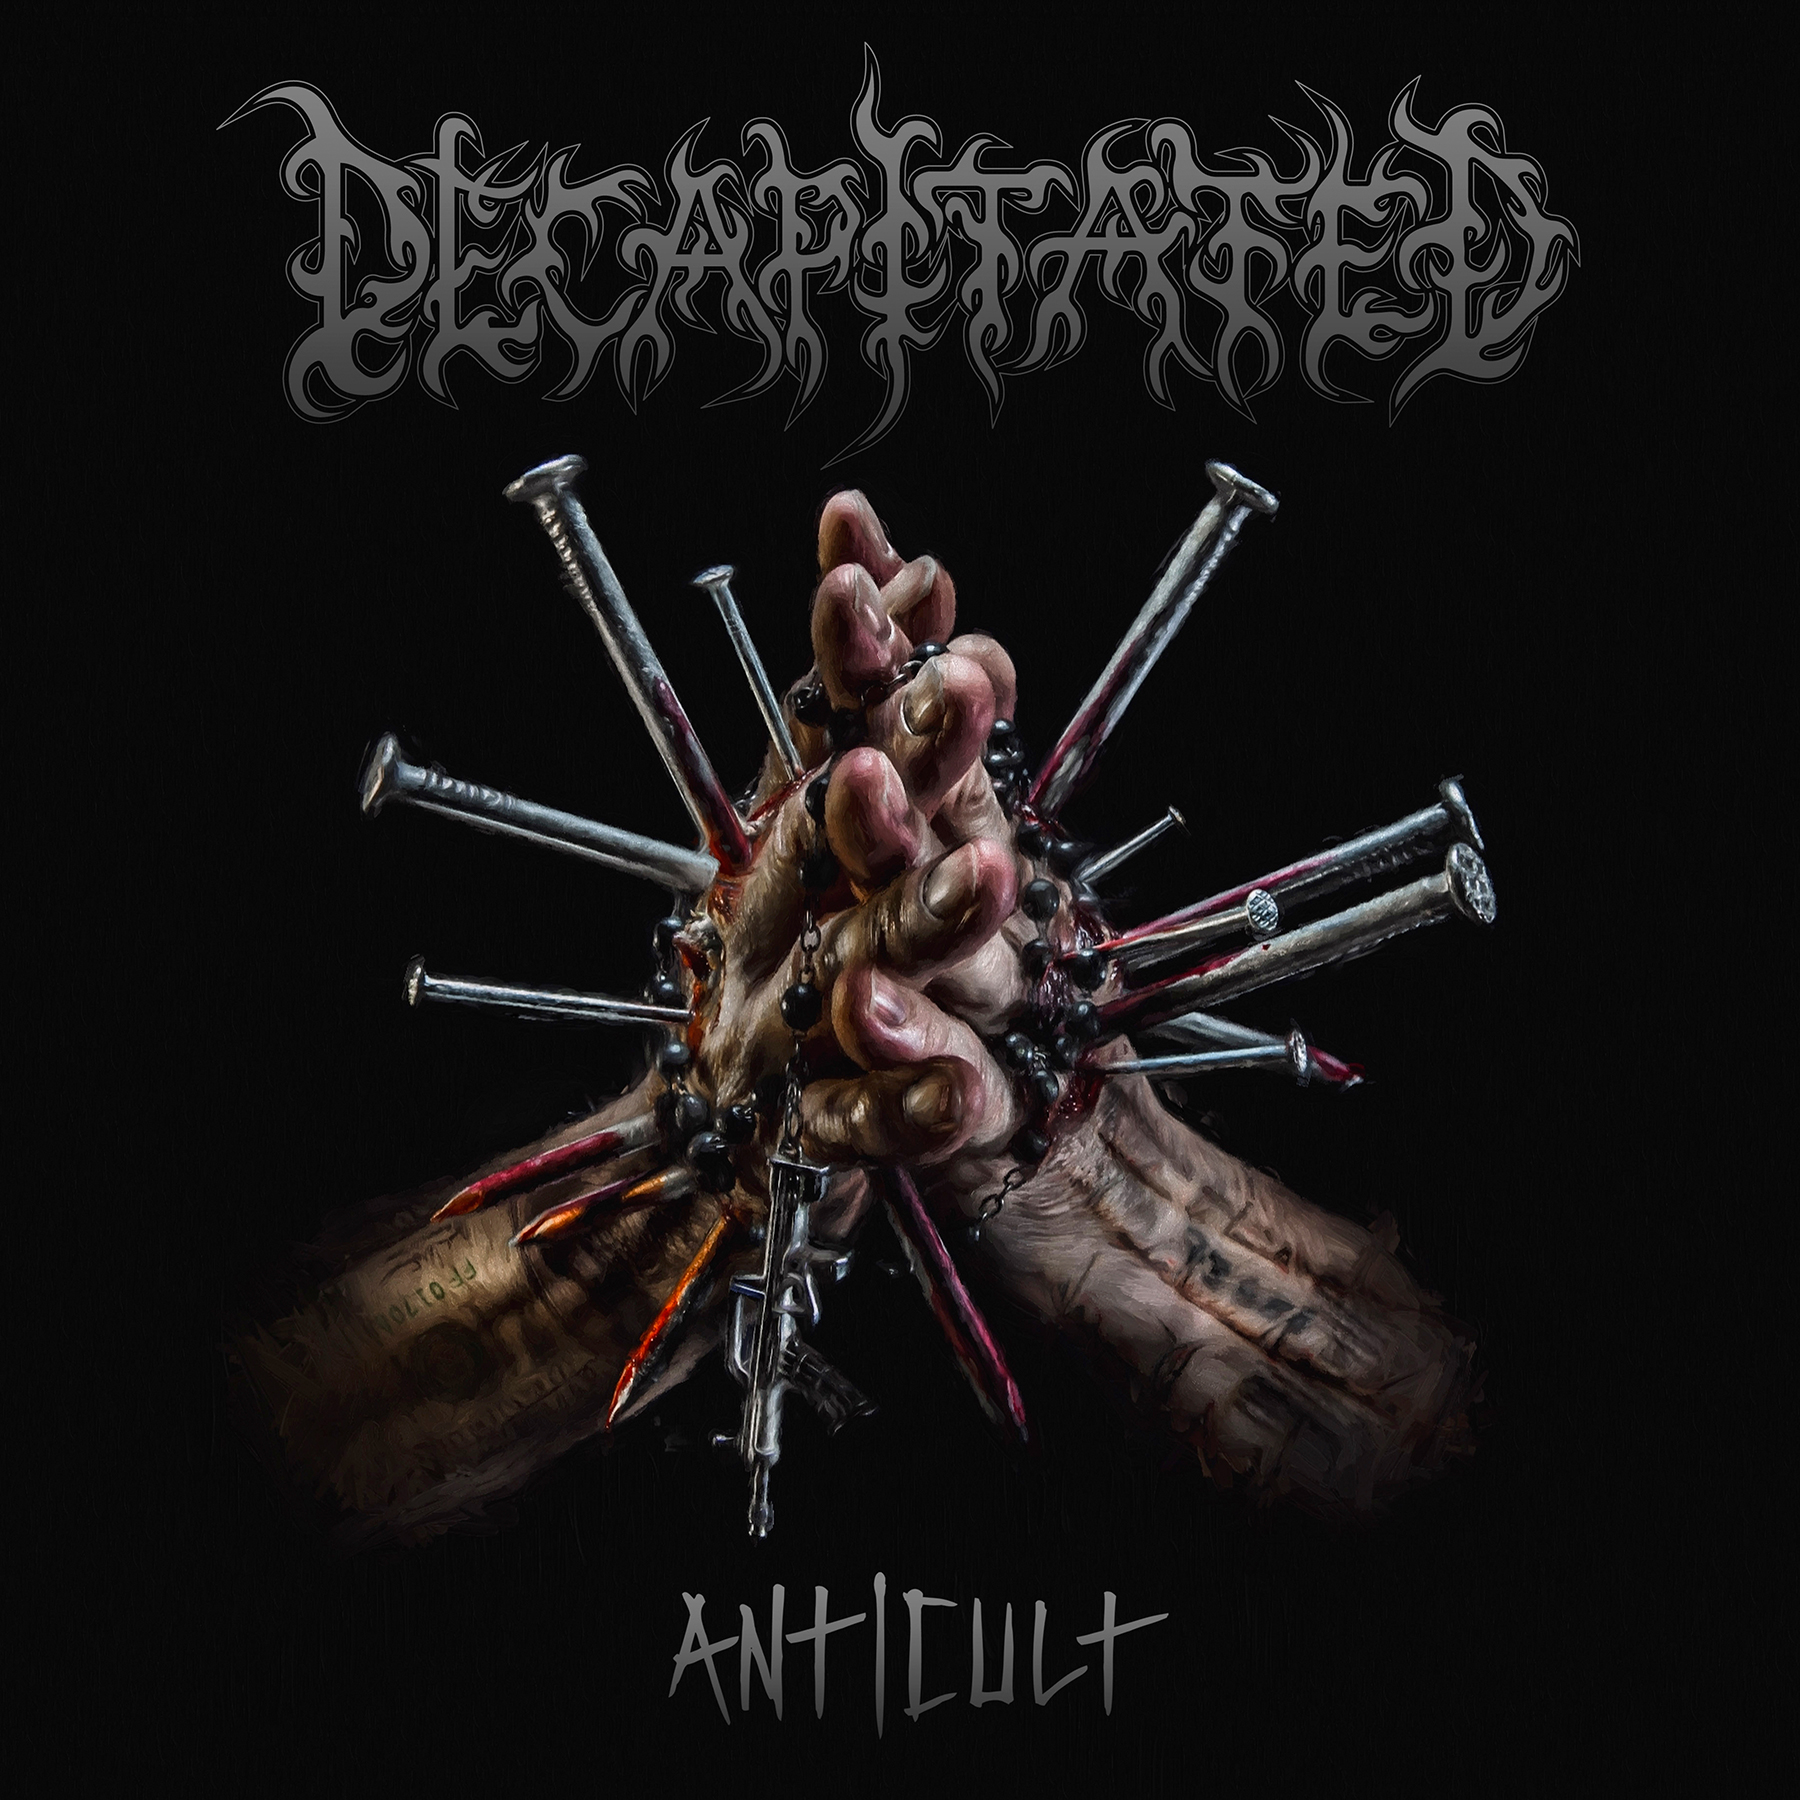 Decapitated Discography And Music Decapitated Anticult The Images, Photos, Reviews